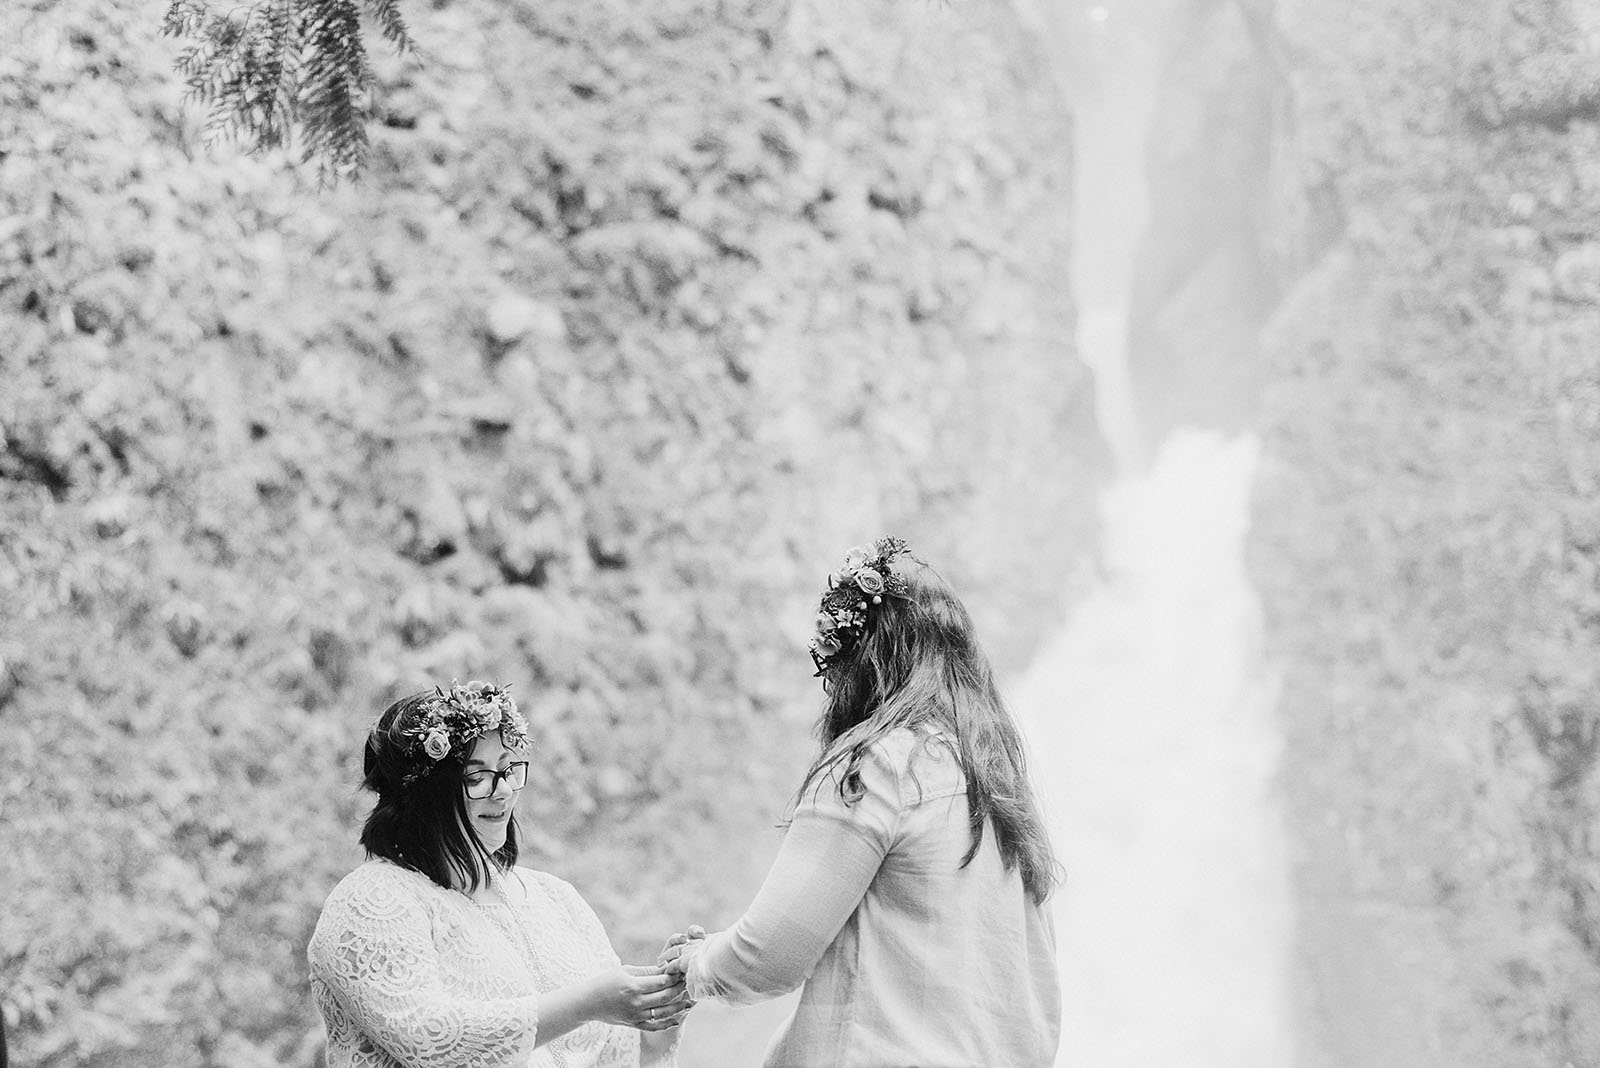 Brides exchanging rings at a Portland waterfall elopement